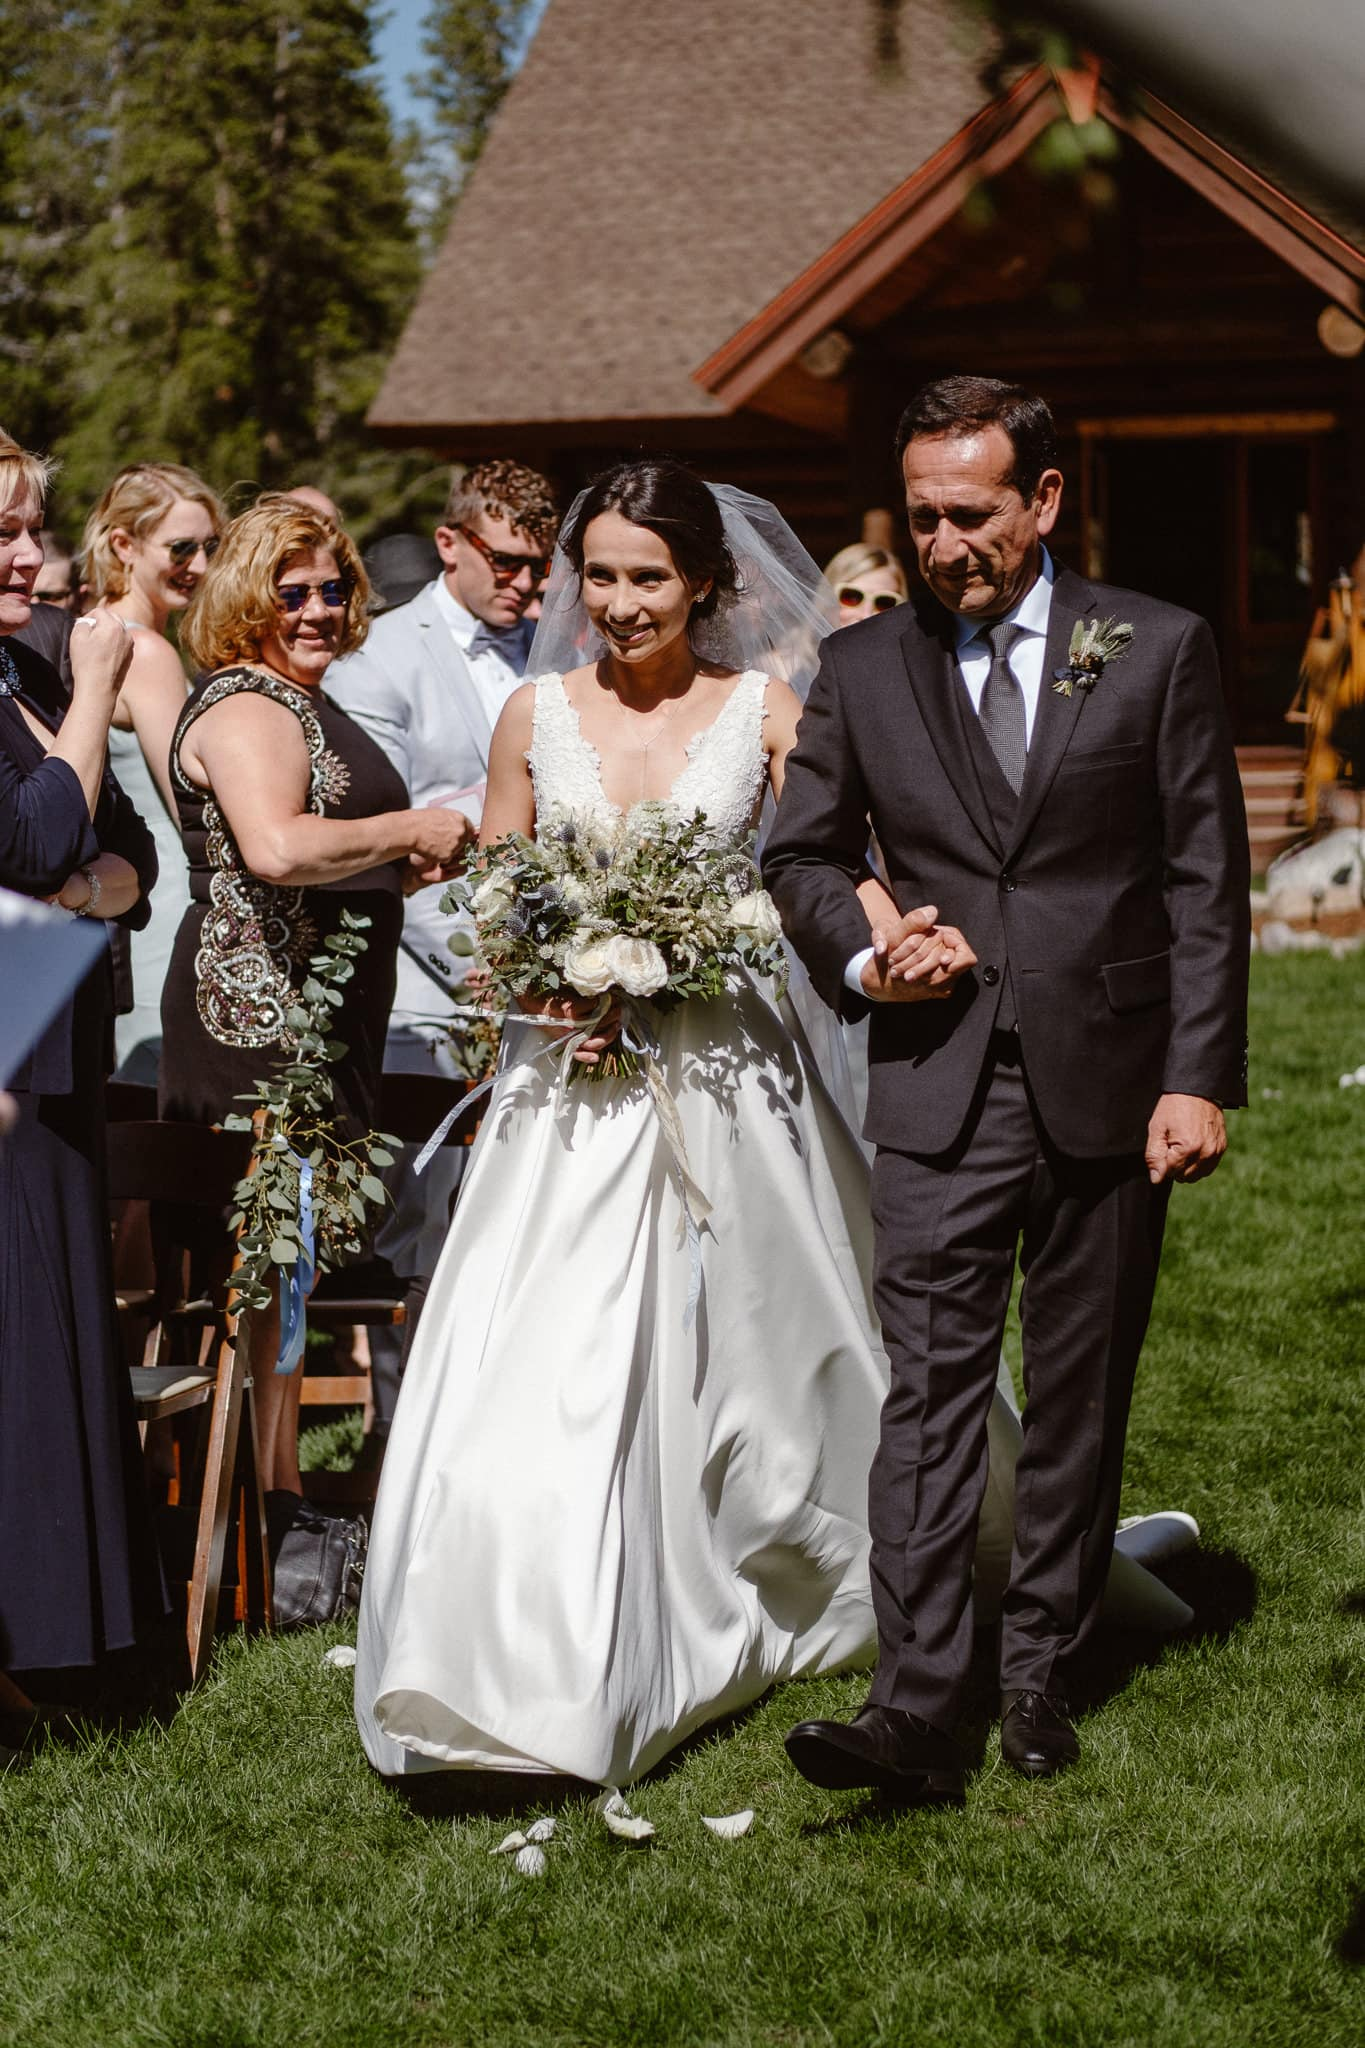 Bride and her father walking down the aisle at Breckenridge Nordic Center wedding ceremony, Summit County wedding photographer